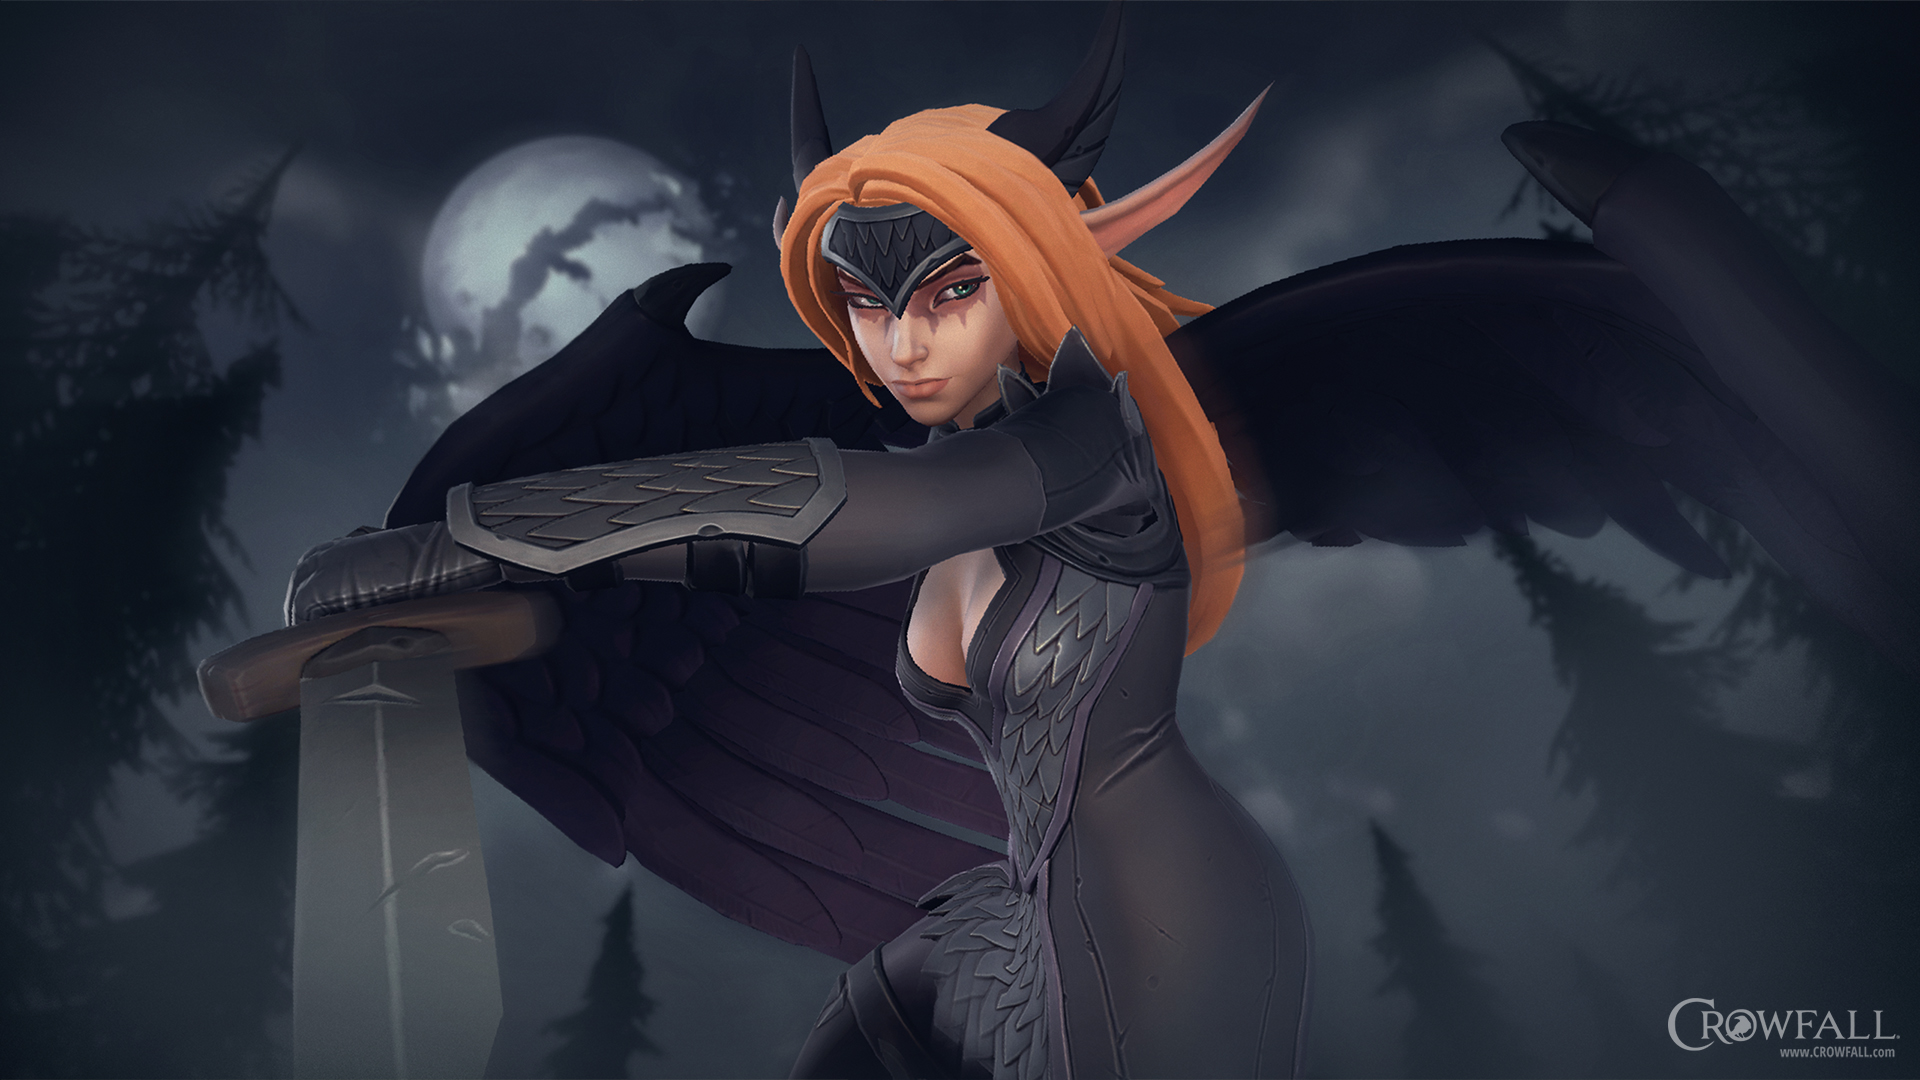 Nächtliche Pirscherin – Crowfall-Wallpaper 1920x1080